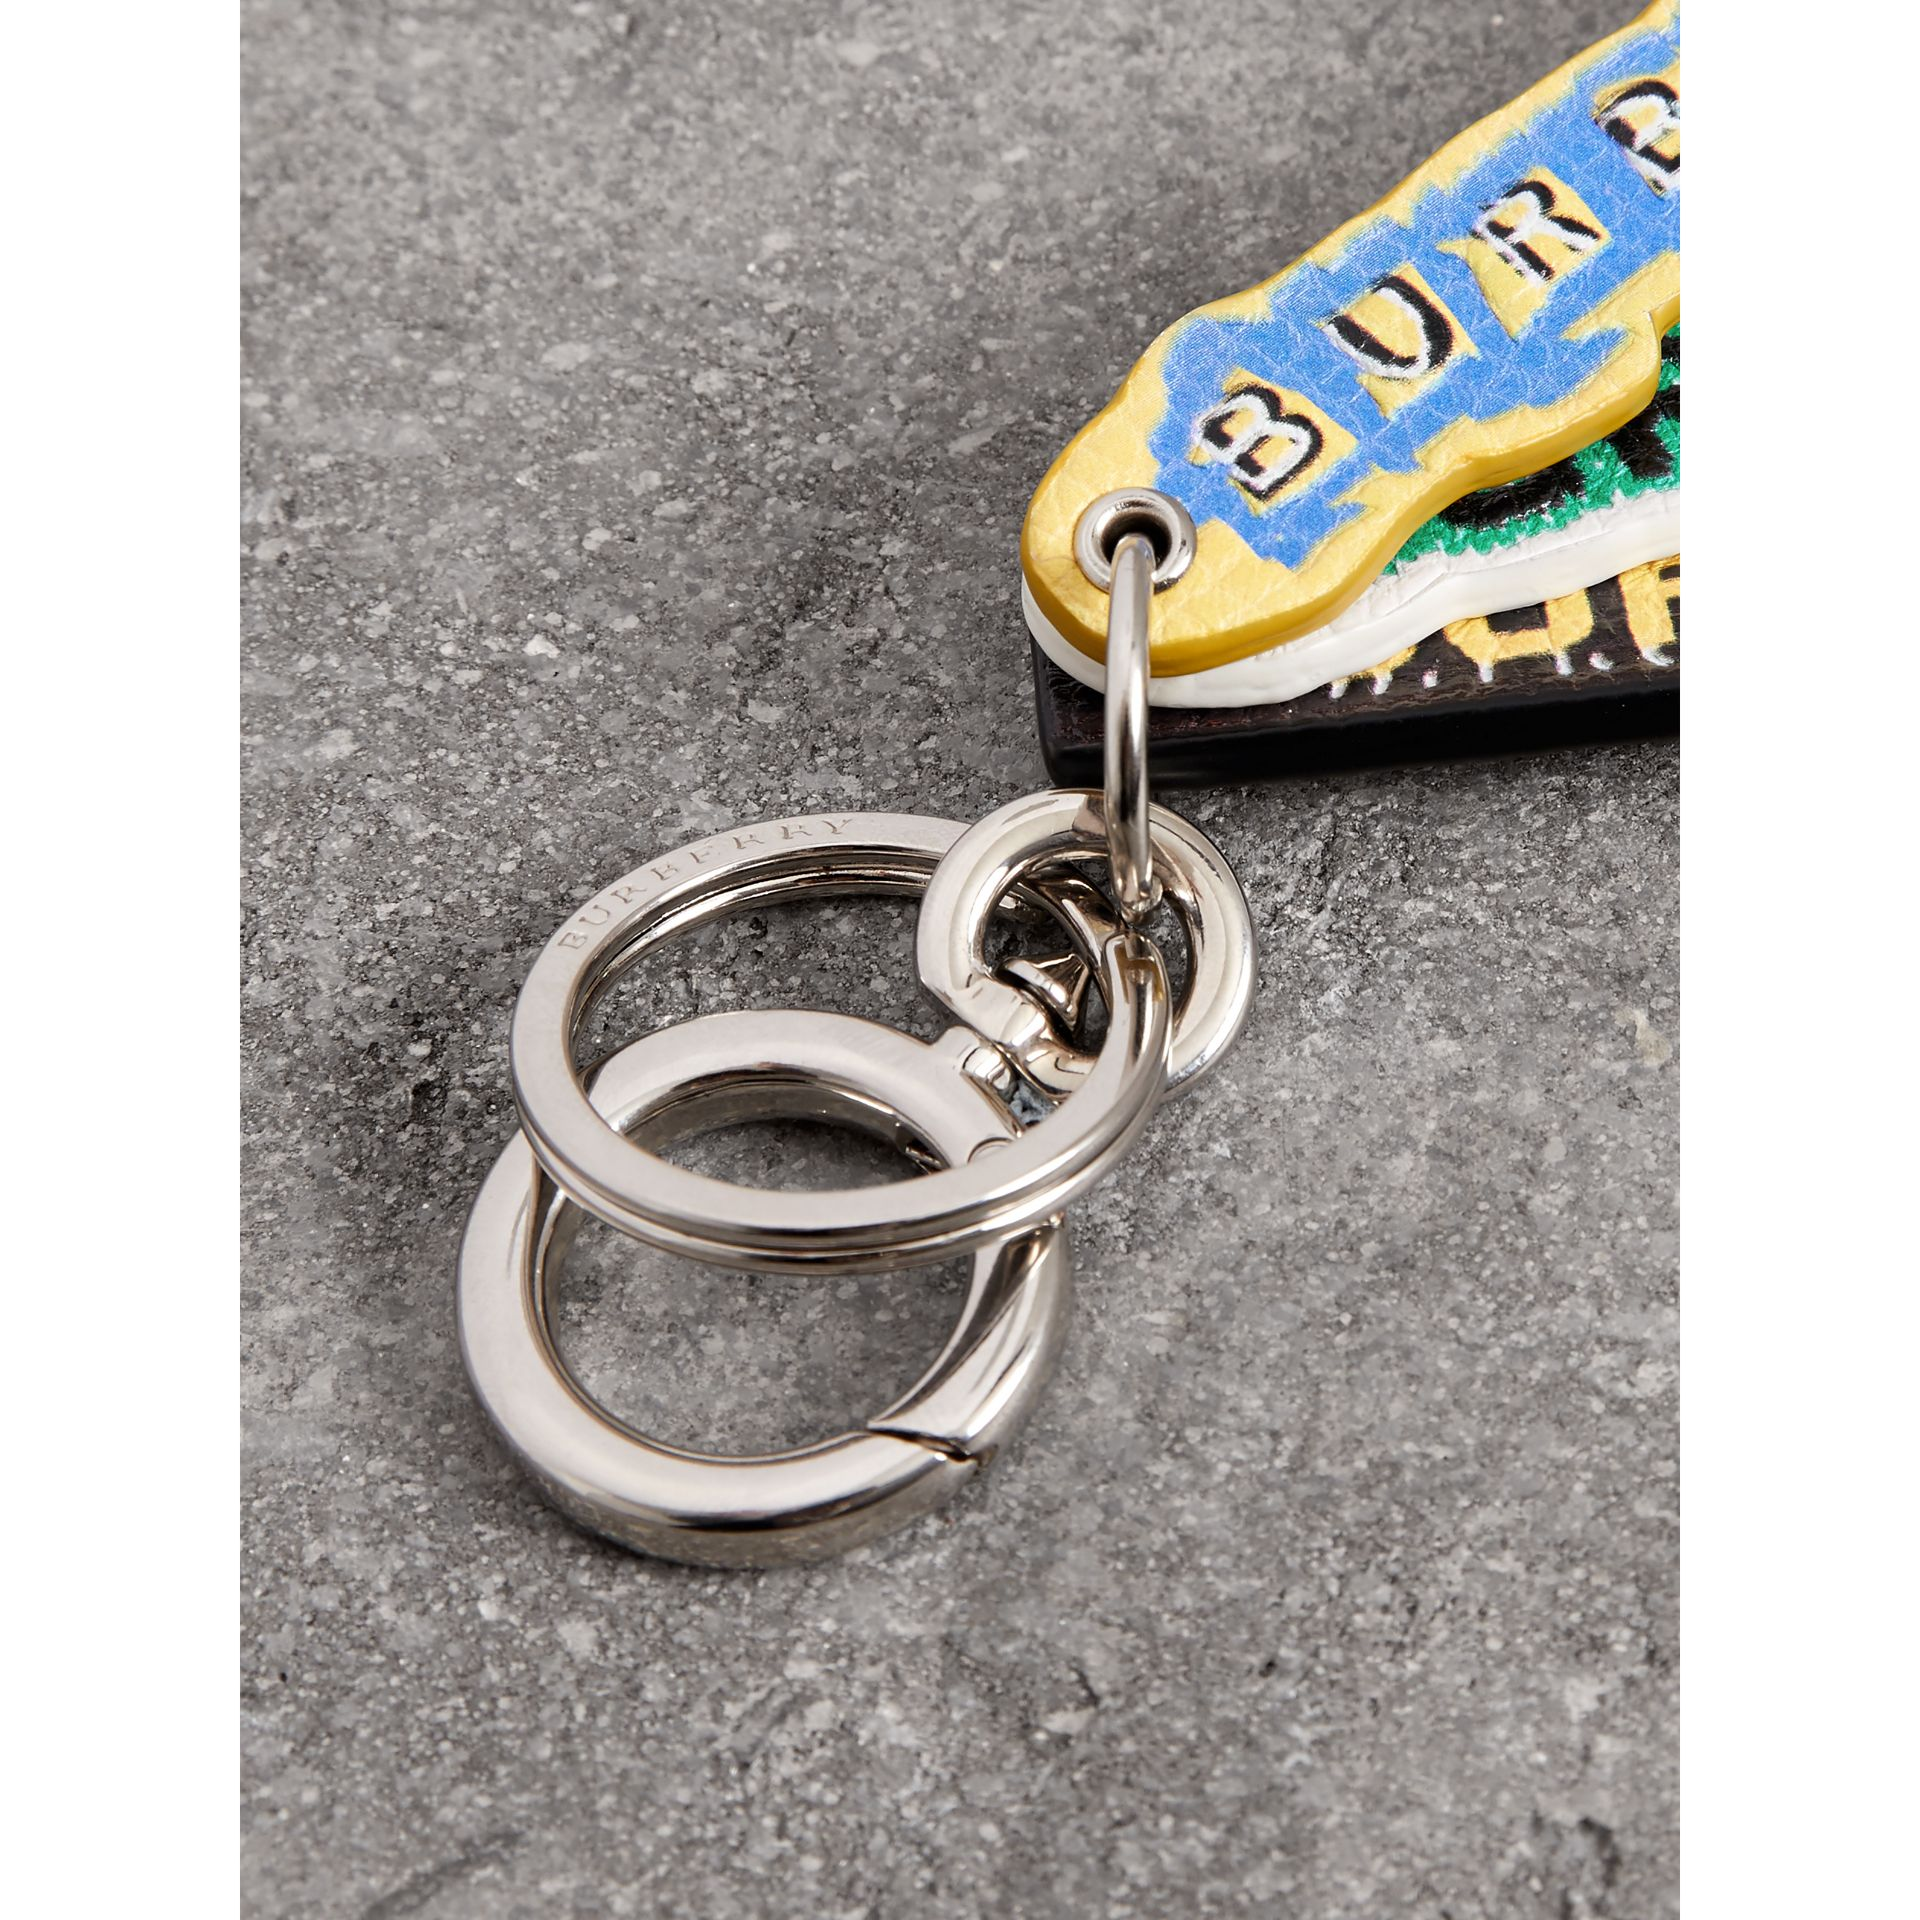 Tag Print Leather Key Chain in Multicolour | Burberry Hong Kong - gallery image 1